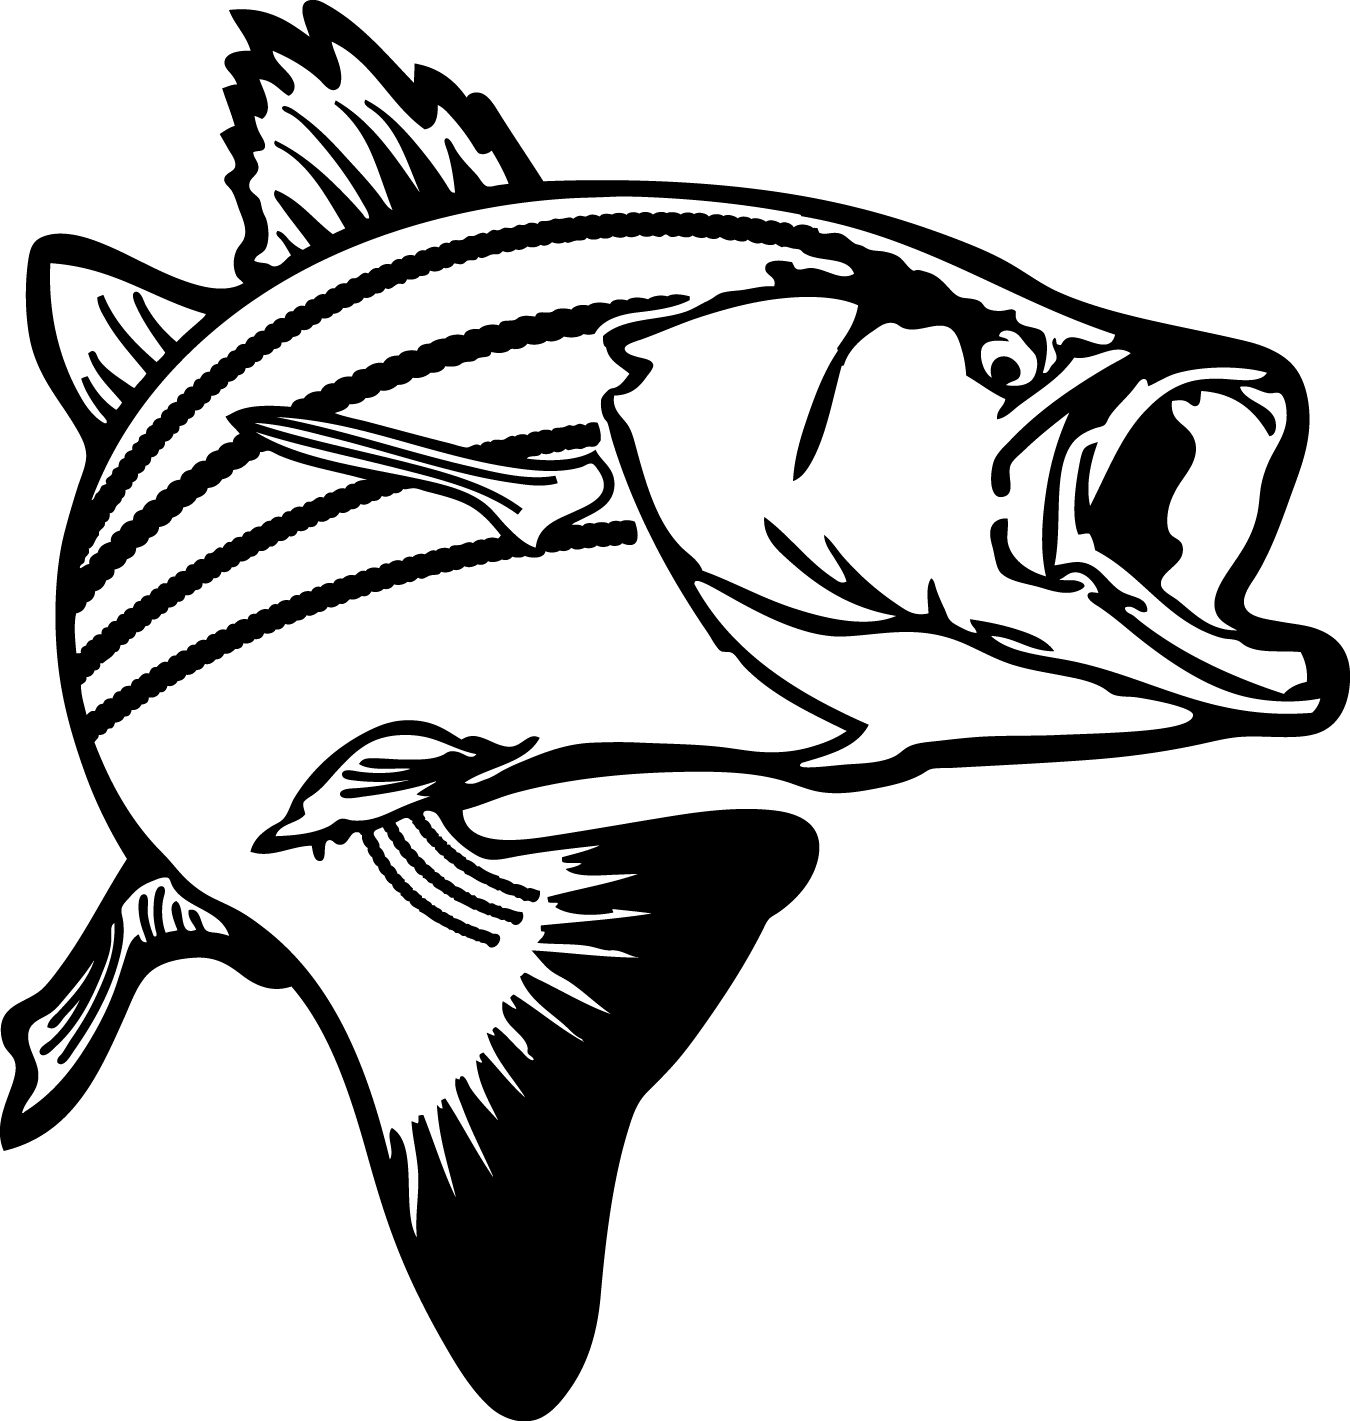 bass fish drawing at getdrawings com free for personal use bass rh getdrawings com Tropical Fish Clip Art Fish Outline Clip Art